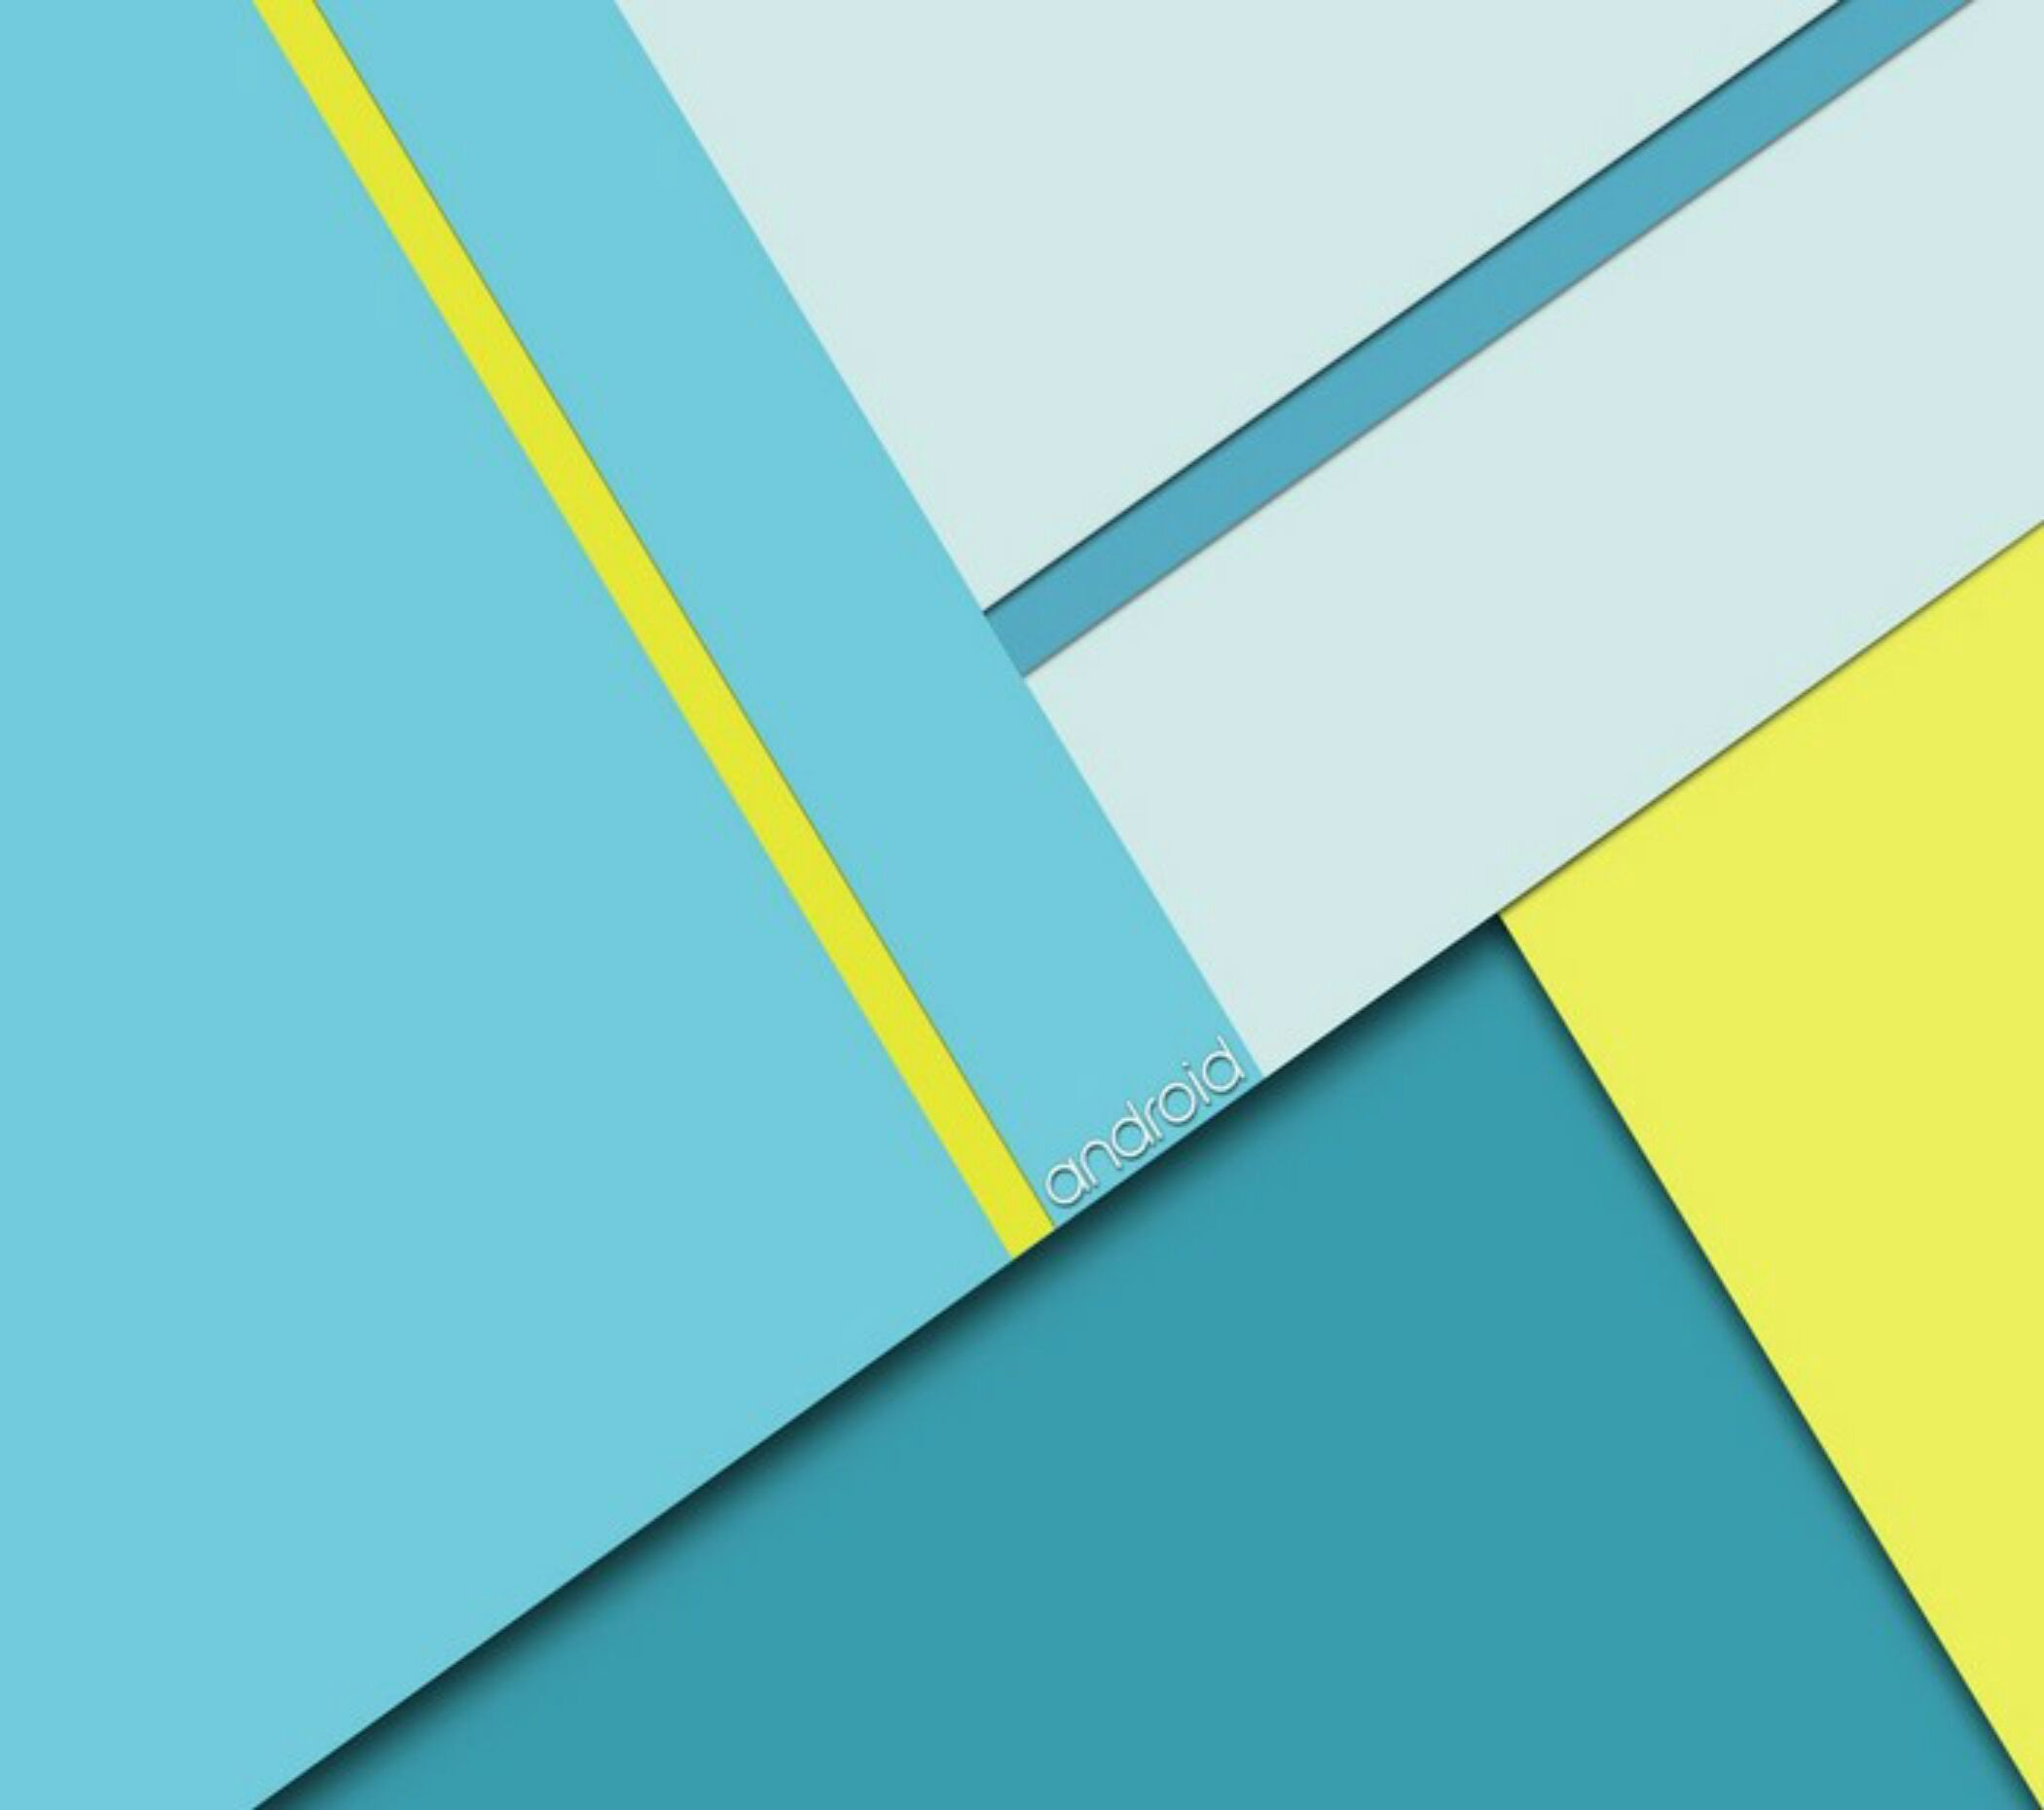 top 15 hd android 5.0 lollipop wallpapers for your device